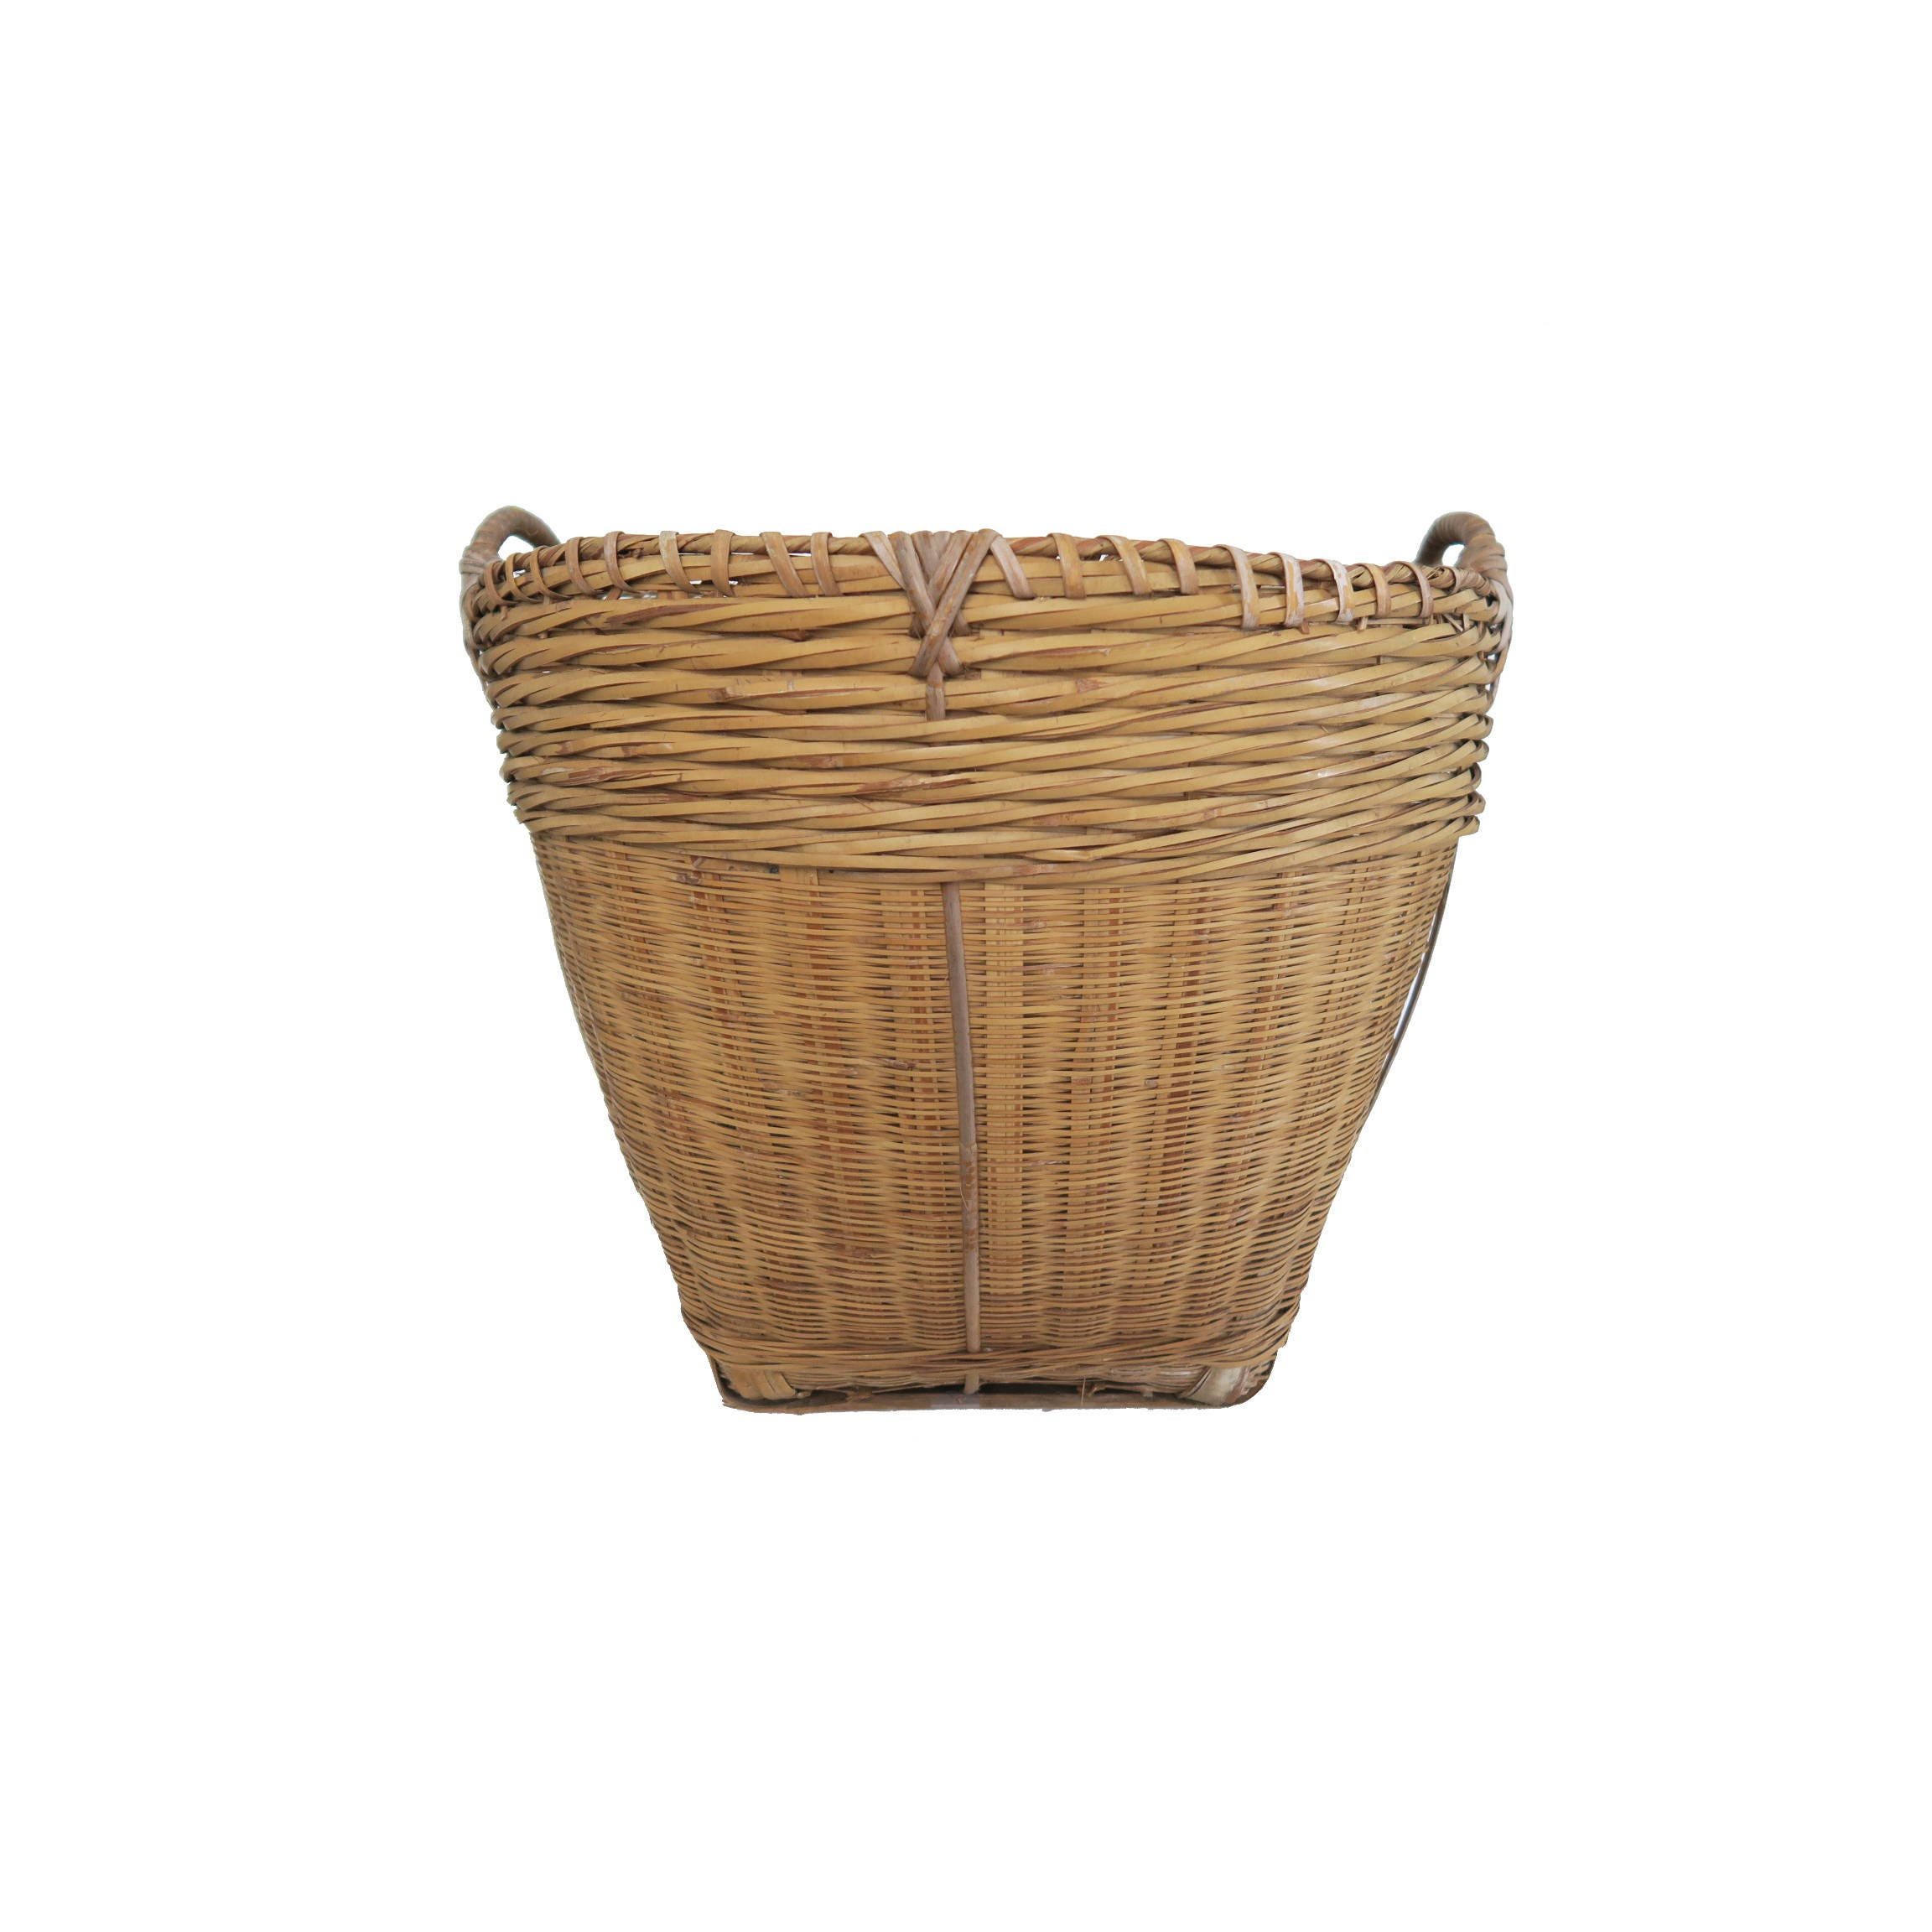 Large Round Wicker Baskets With Handle : Vintage large round woven basket with double handles